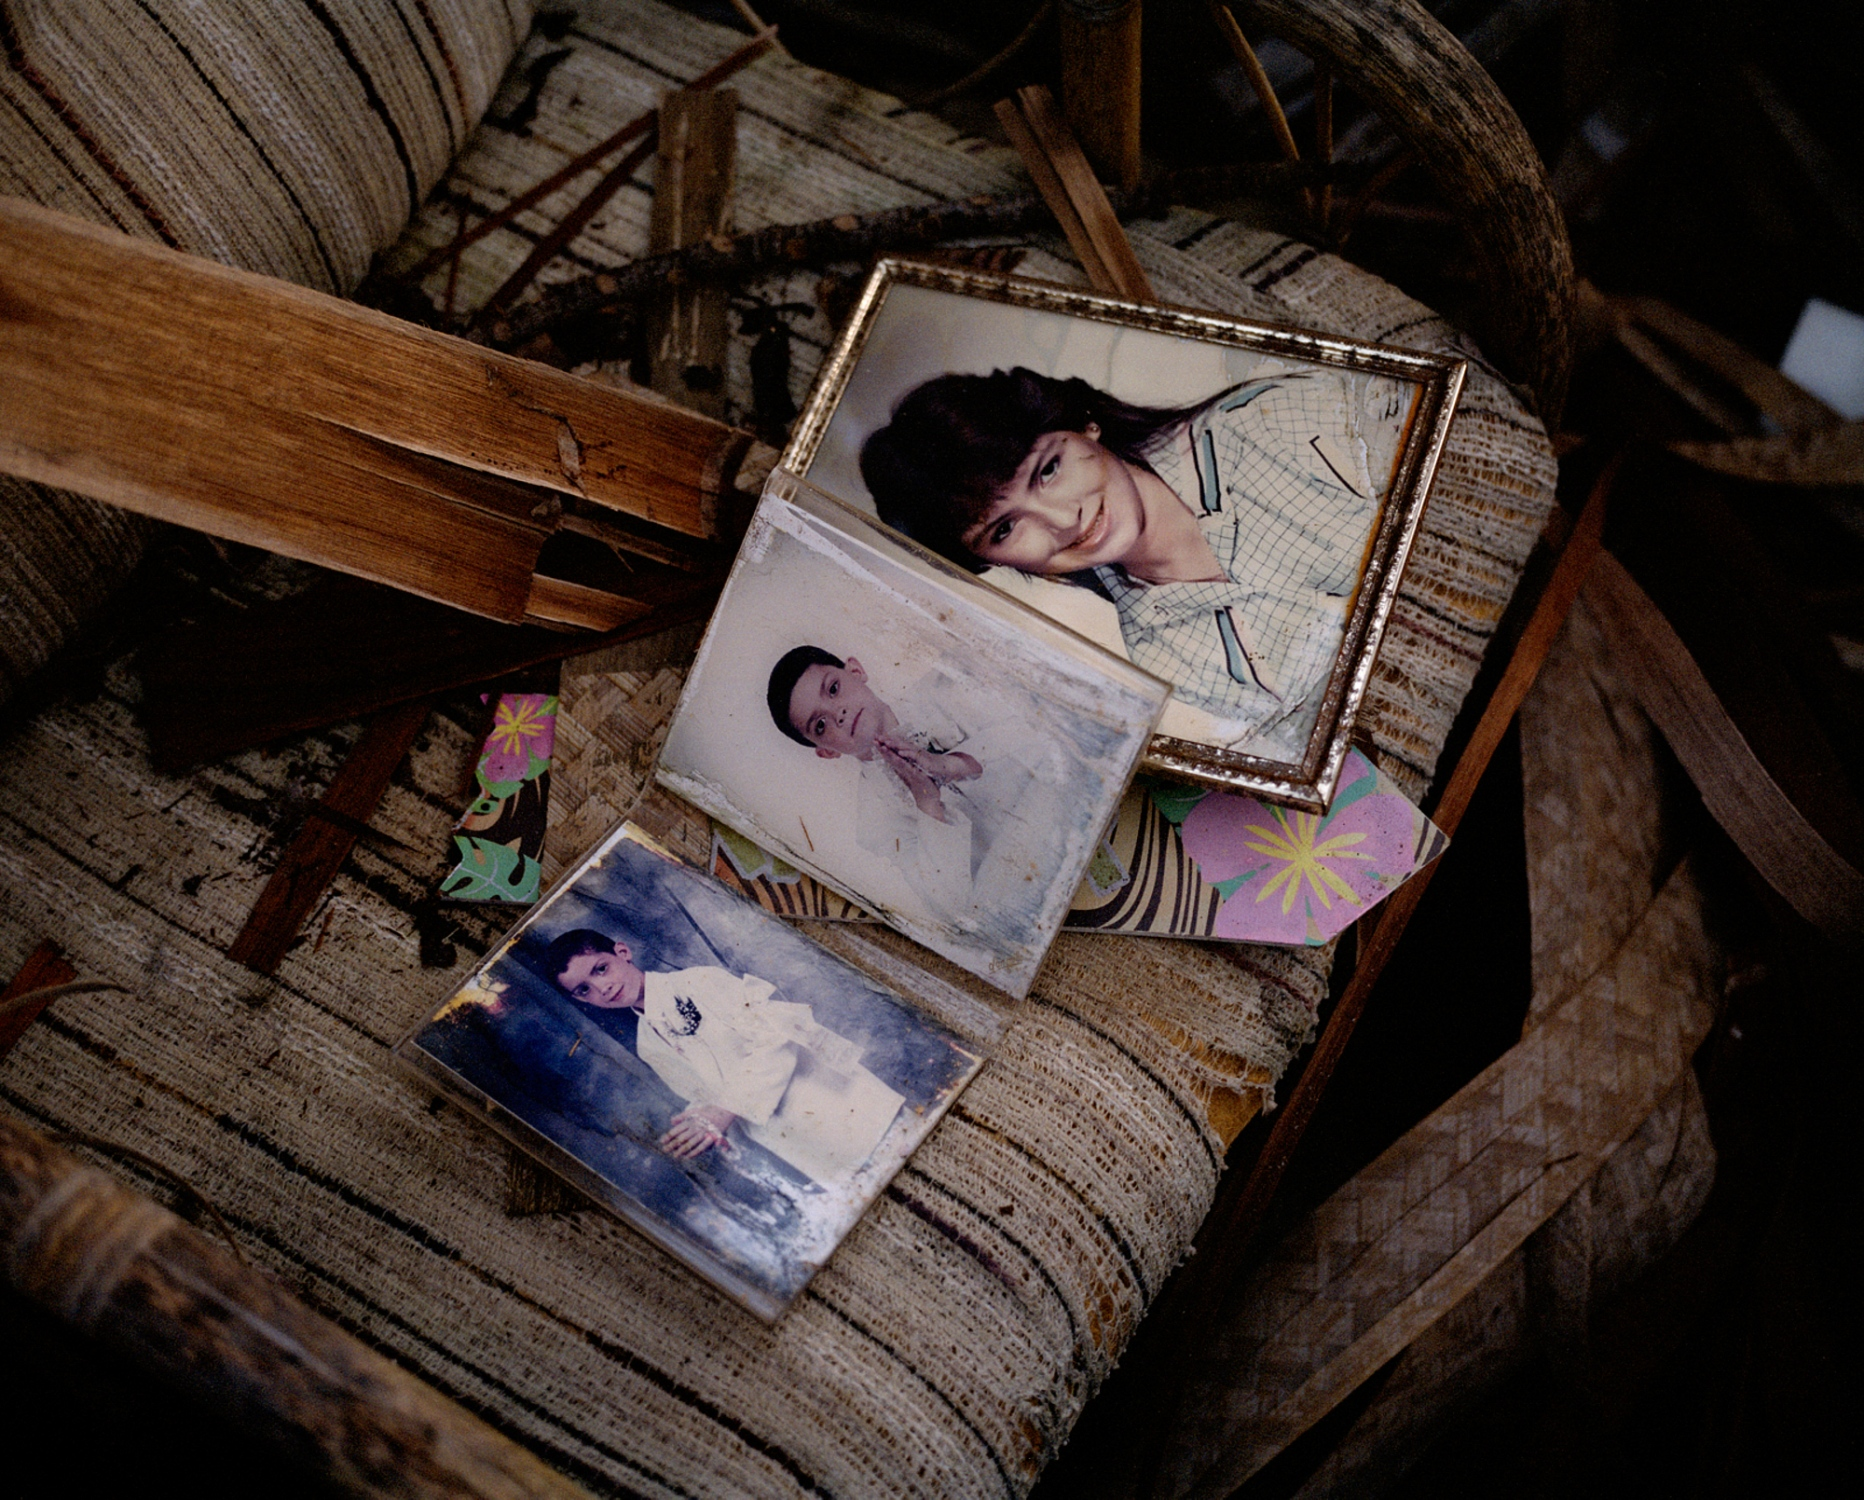 A photograph of myself, alongside photographs of my aunt Giacinia and brother Erik, sits on a couch amongst broken wood and glass in my grandmother Amparo's home. Villalba, Puerto Rico, December 2017.